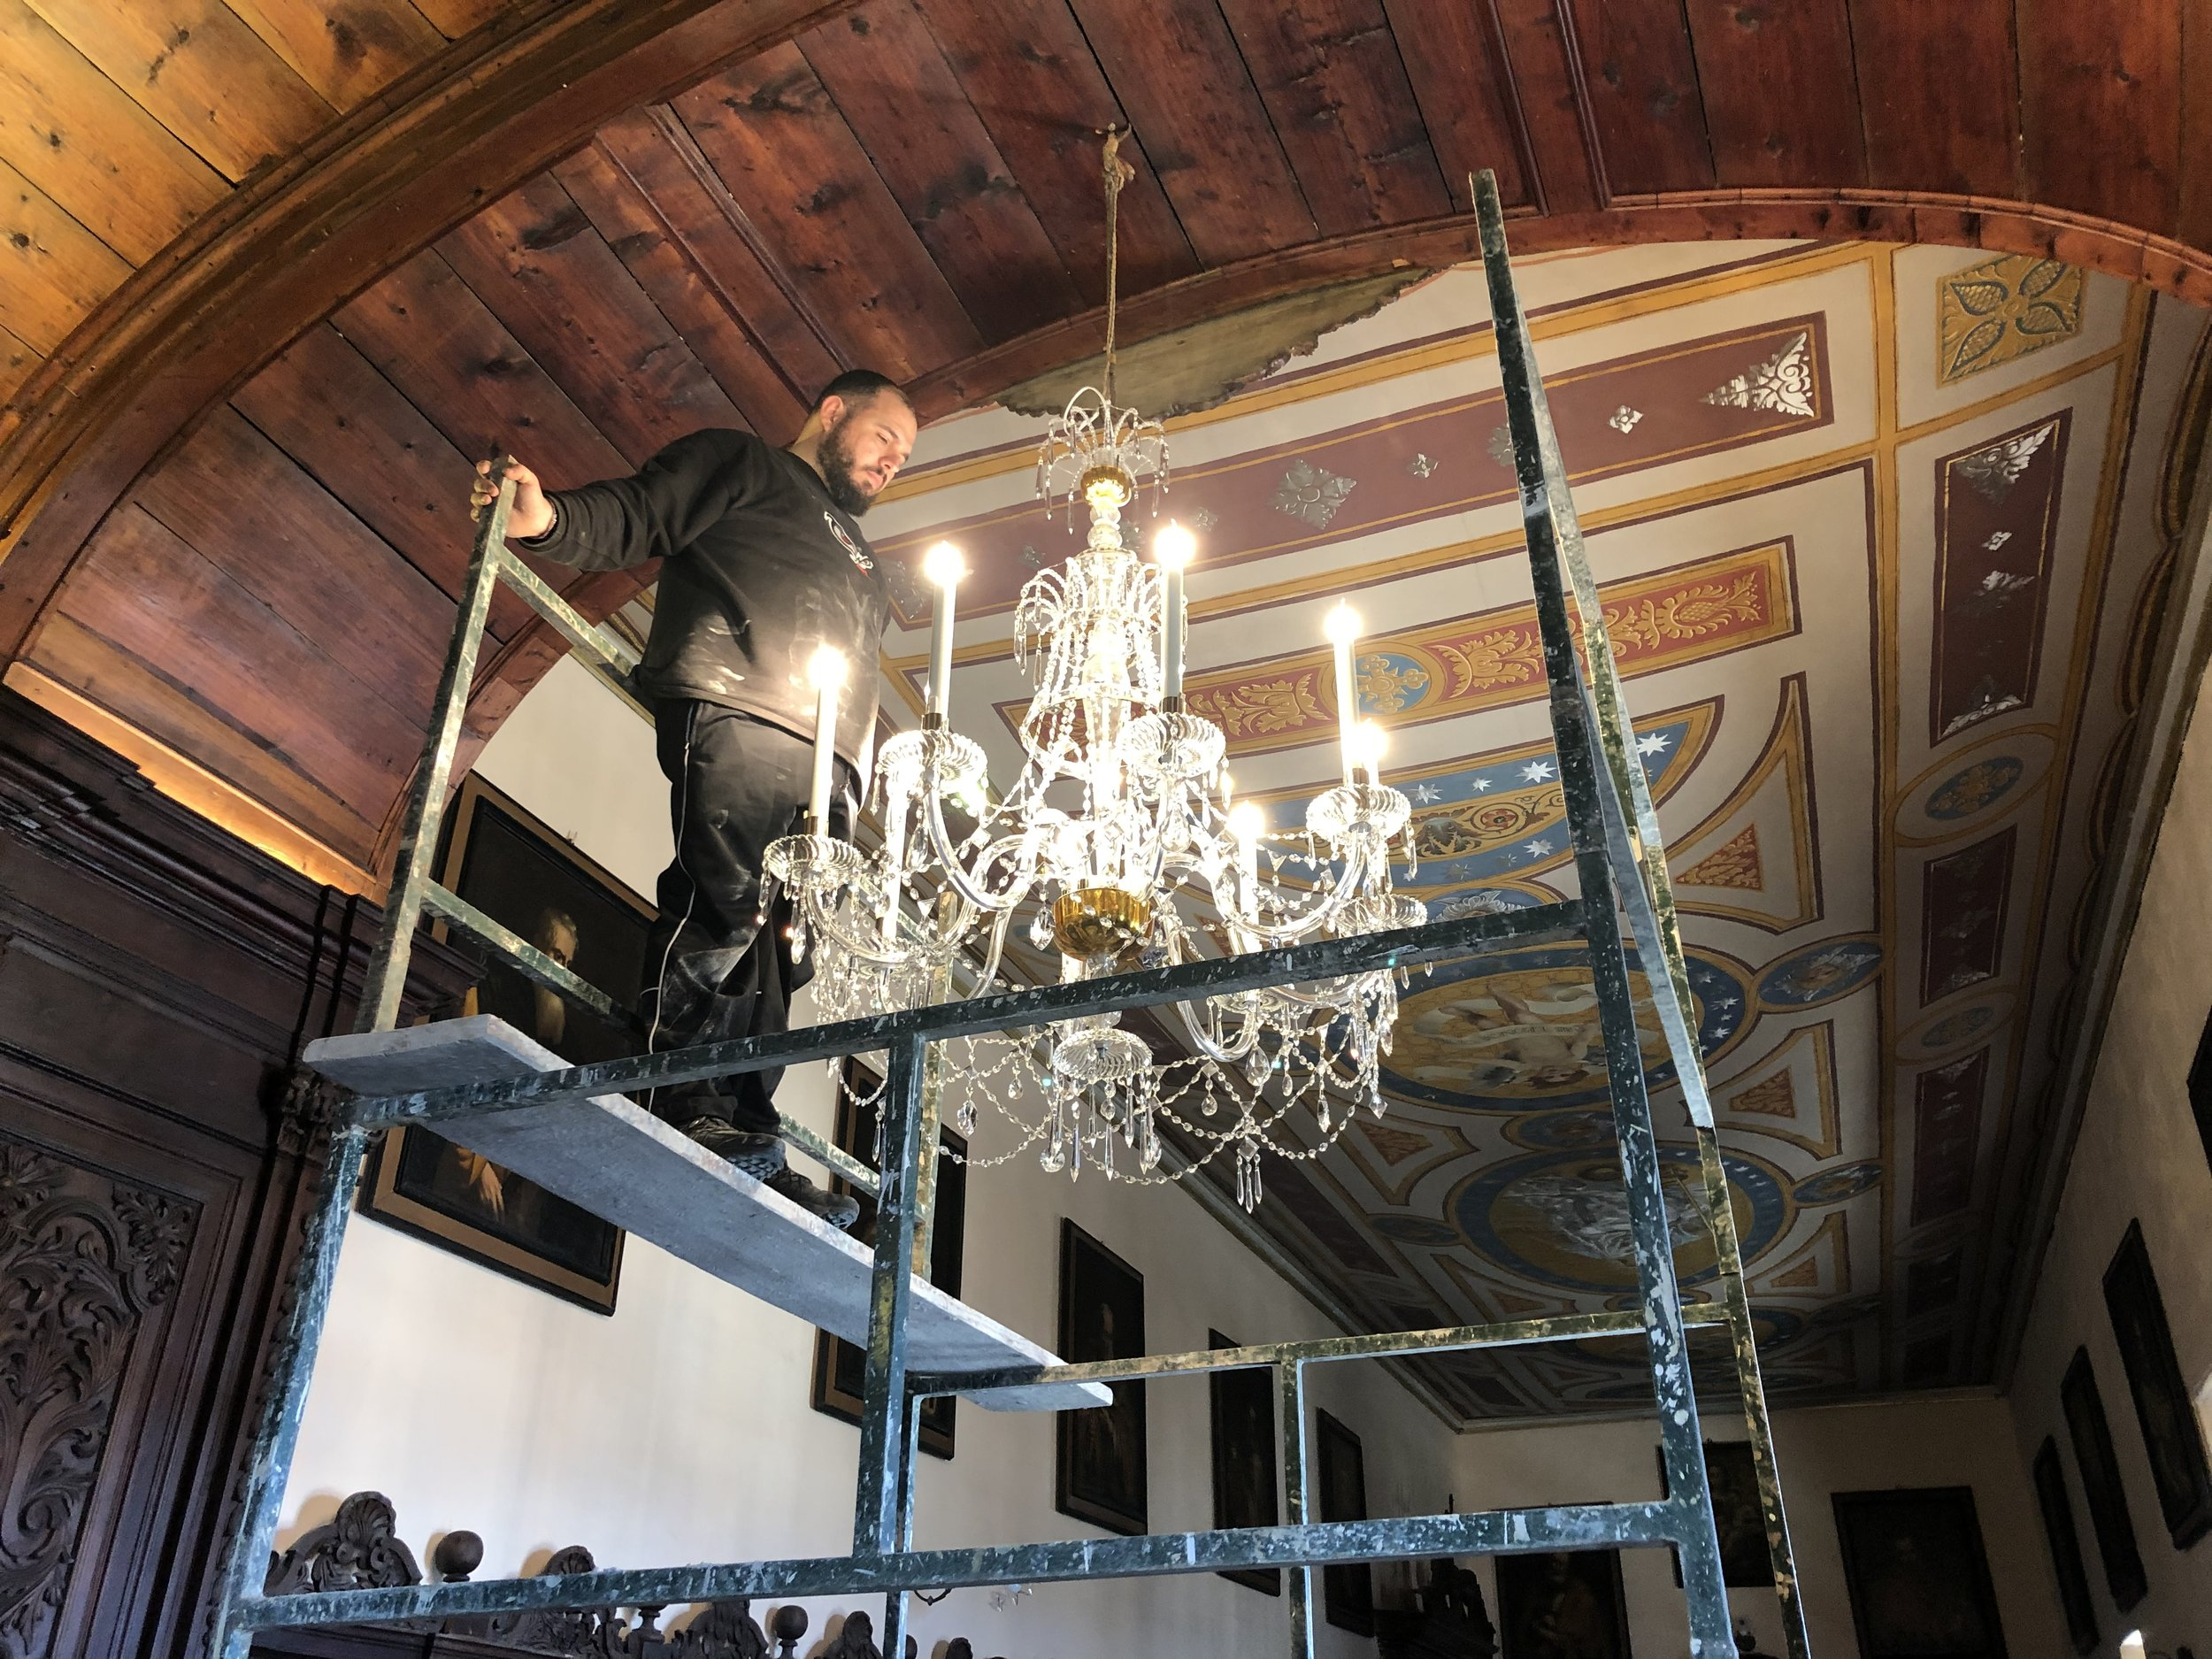 Checking and admiring the chandelier